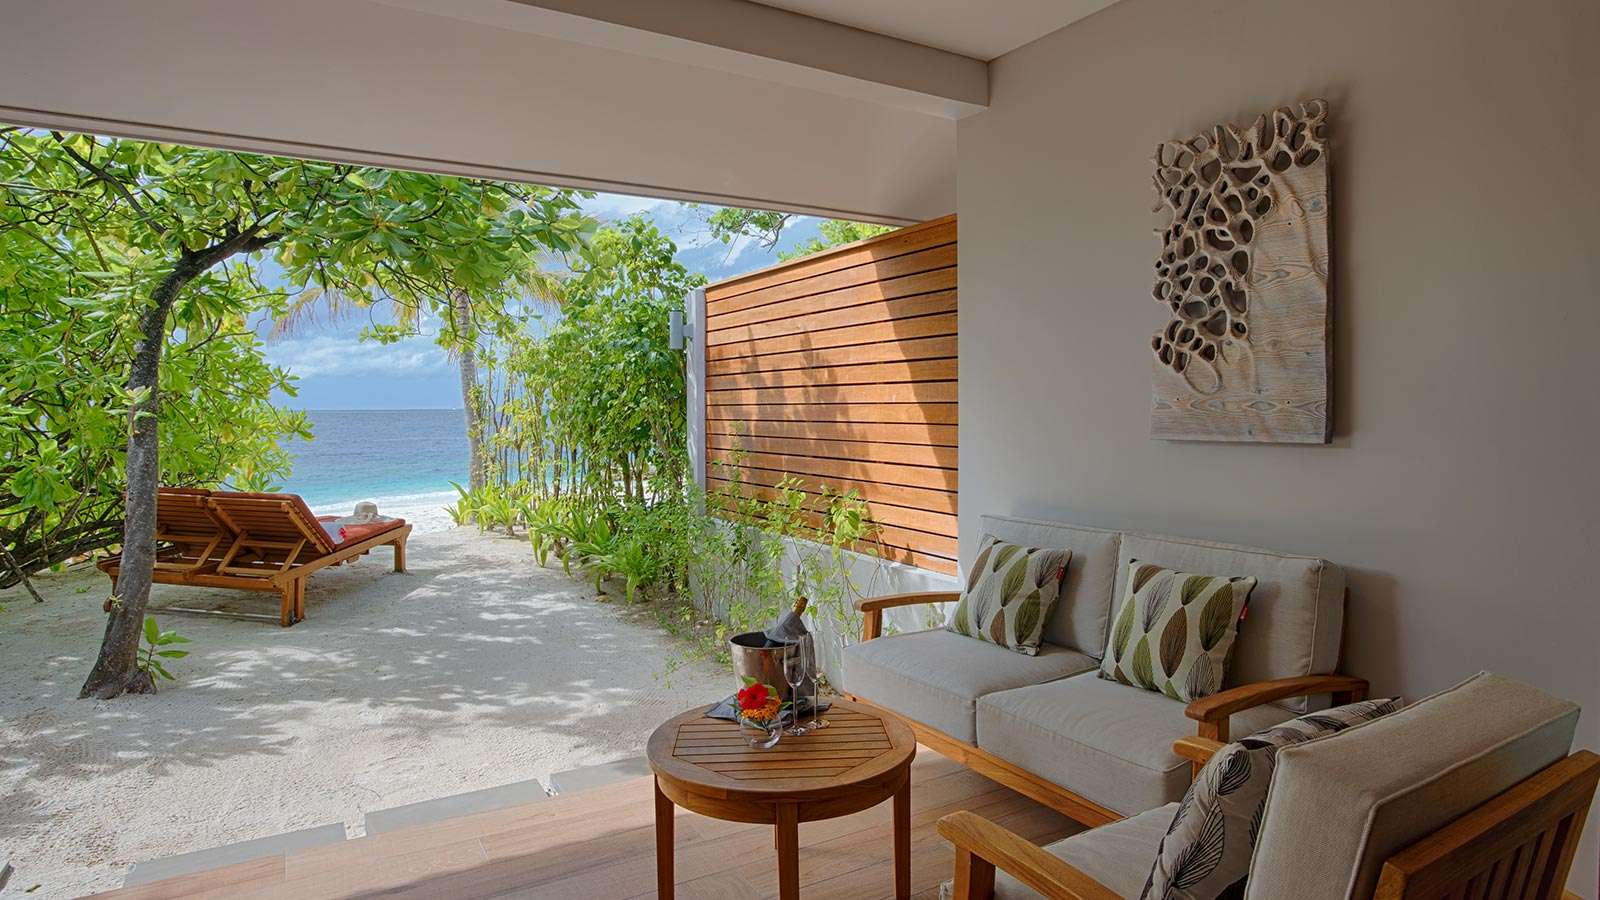 Luxury villa rentals asia - Maldives - Huvahandhoo - Lily beachresortandspa - Beach Suite - Image 1/5